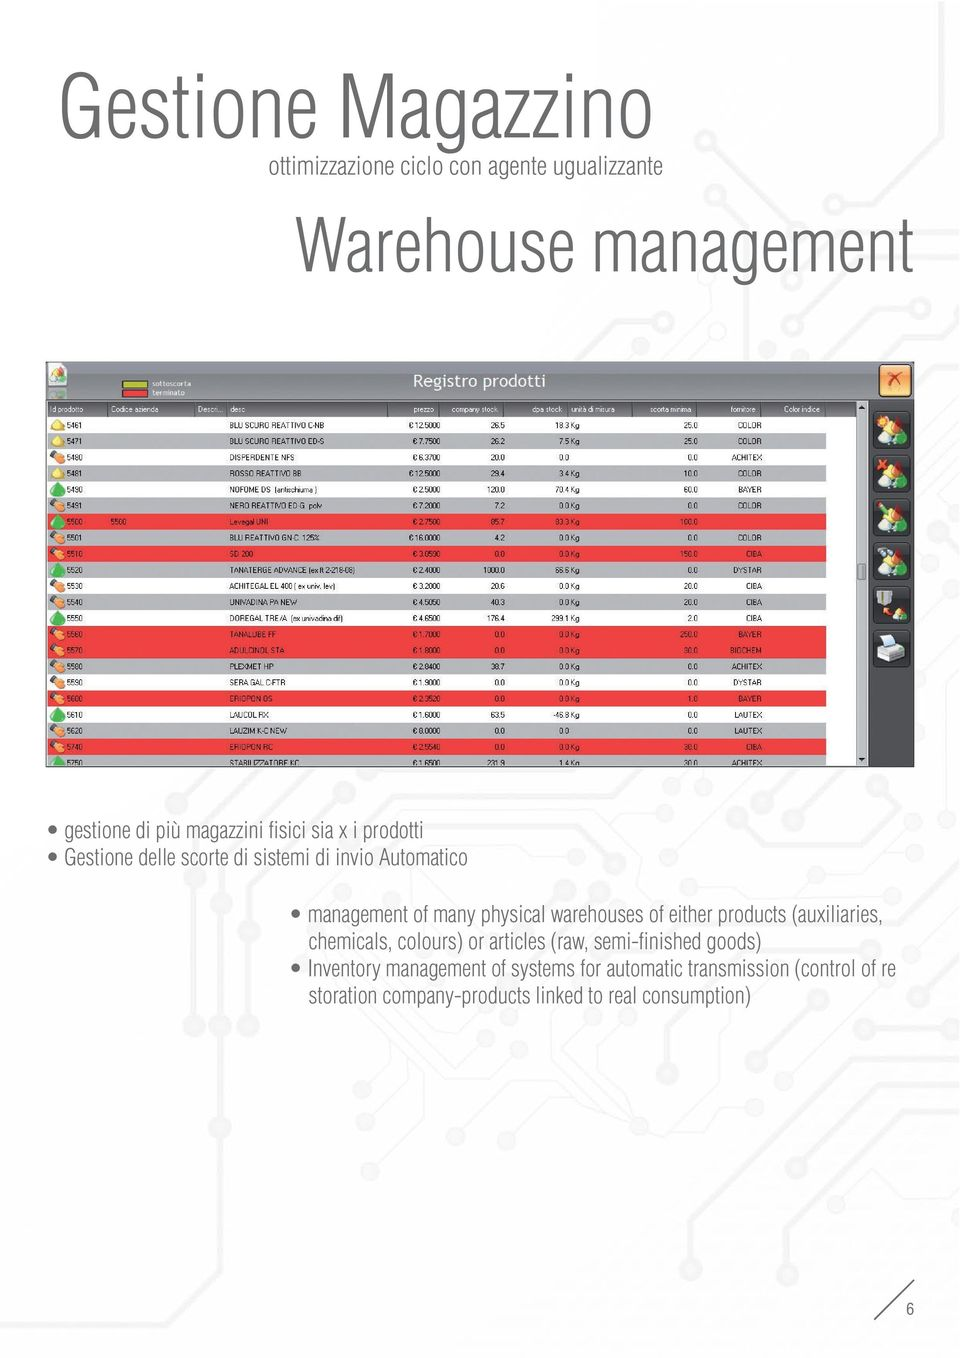 warehouses of either products (auxiliaries, chemicals, colours) or articles (raw, semi-finished goods) Inventory